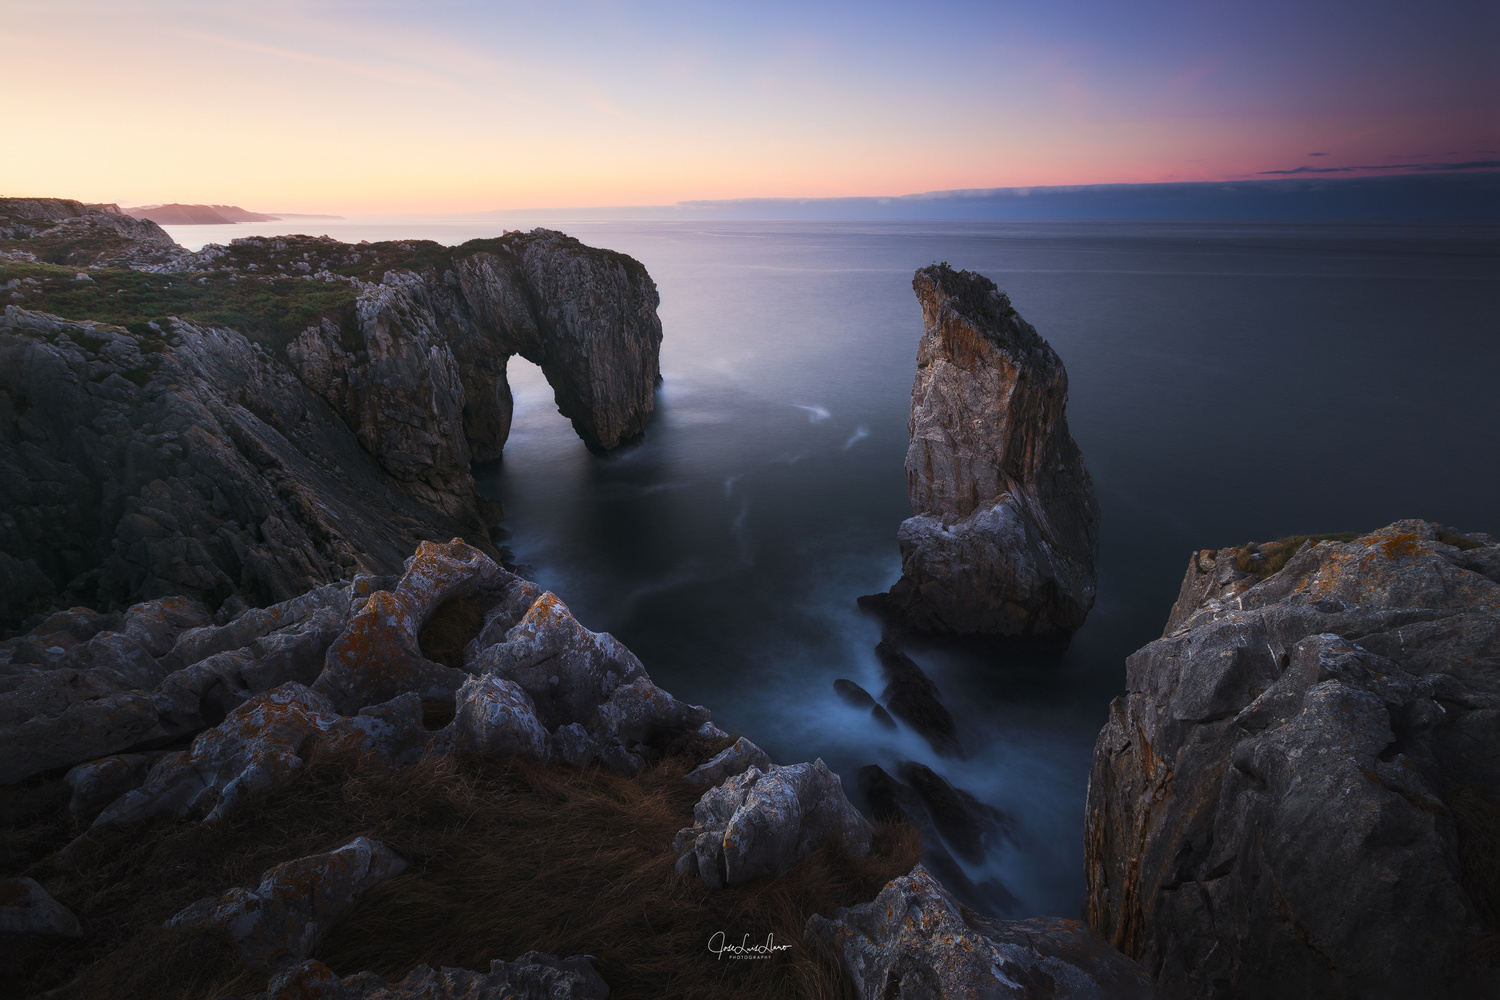 Cliffs of Hell by Jose Luis Llano